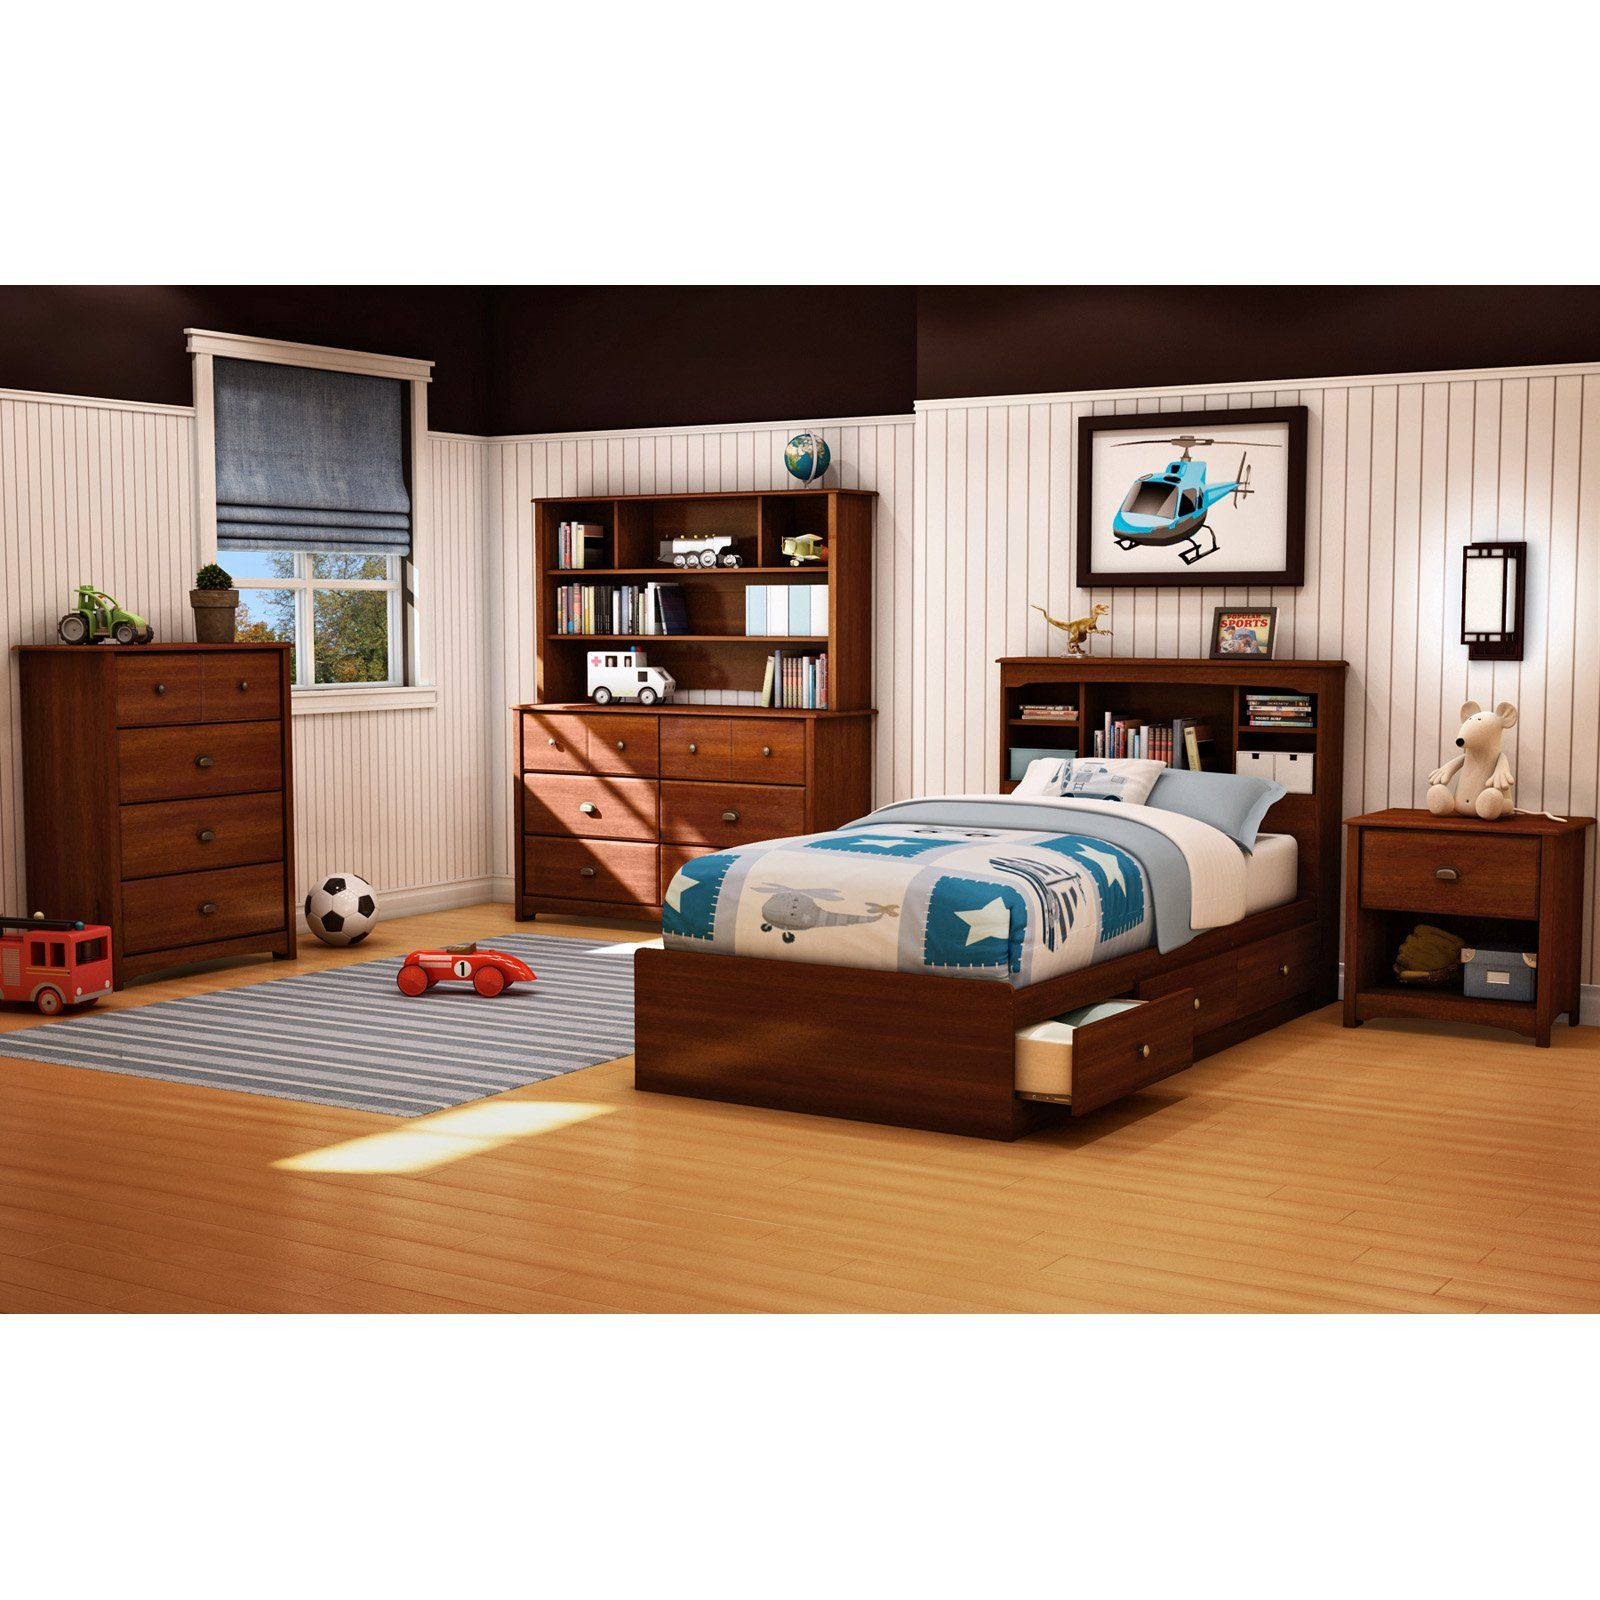 South Shore Willow Twin Mates Bookcase Bed Collection Bedroom Collections Furniture Bedroom Sets Kids Bedroom Furniture